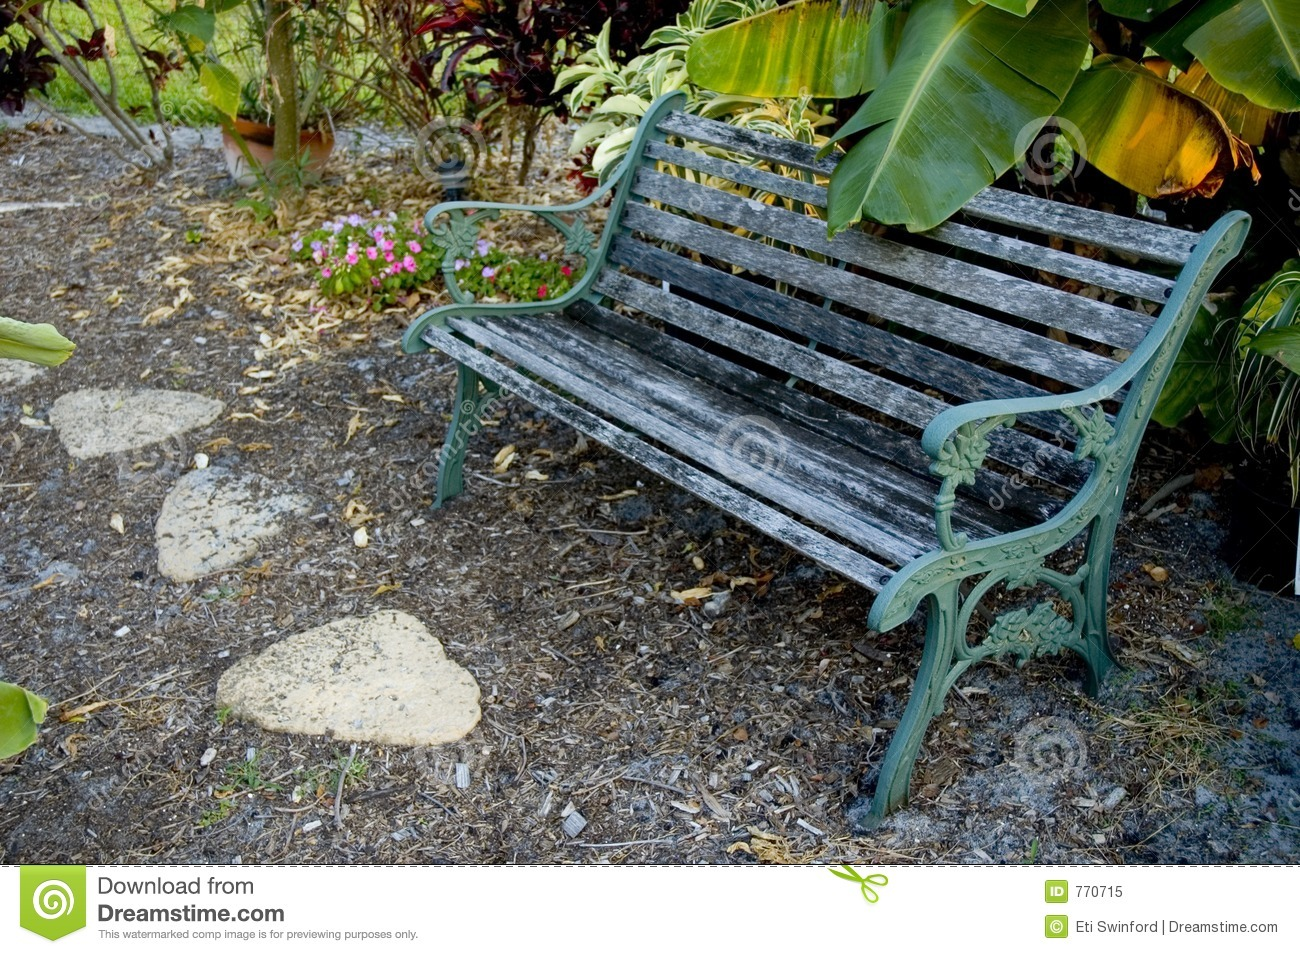 Awesome banc de jardin trigano pictures for Banc jardin pierre